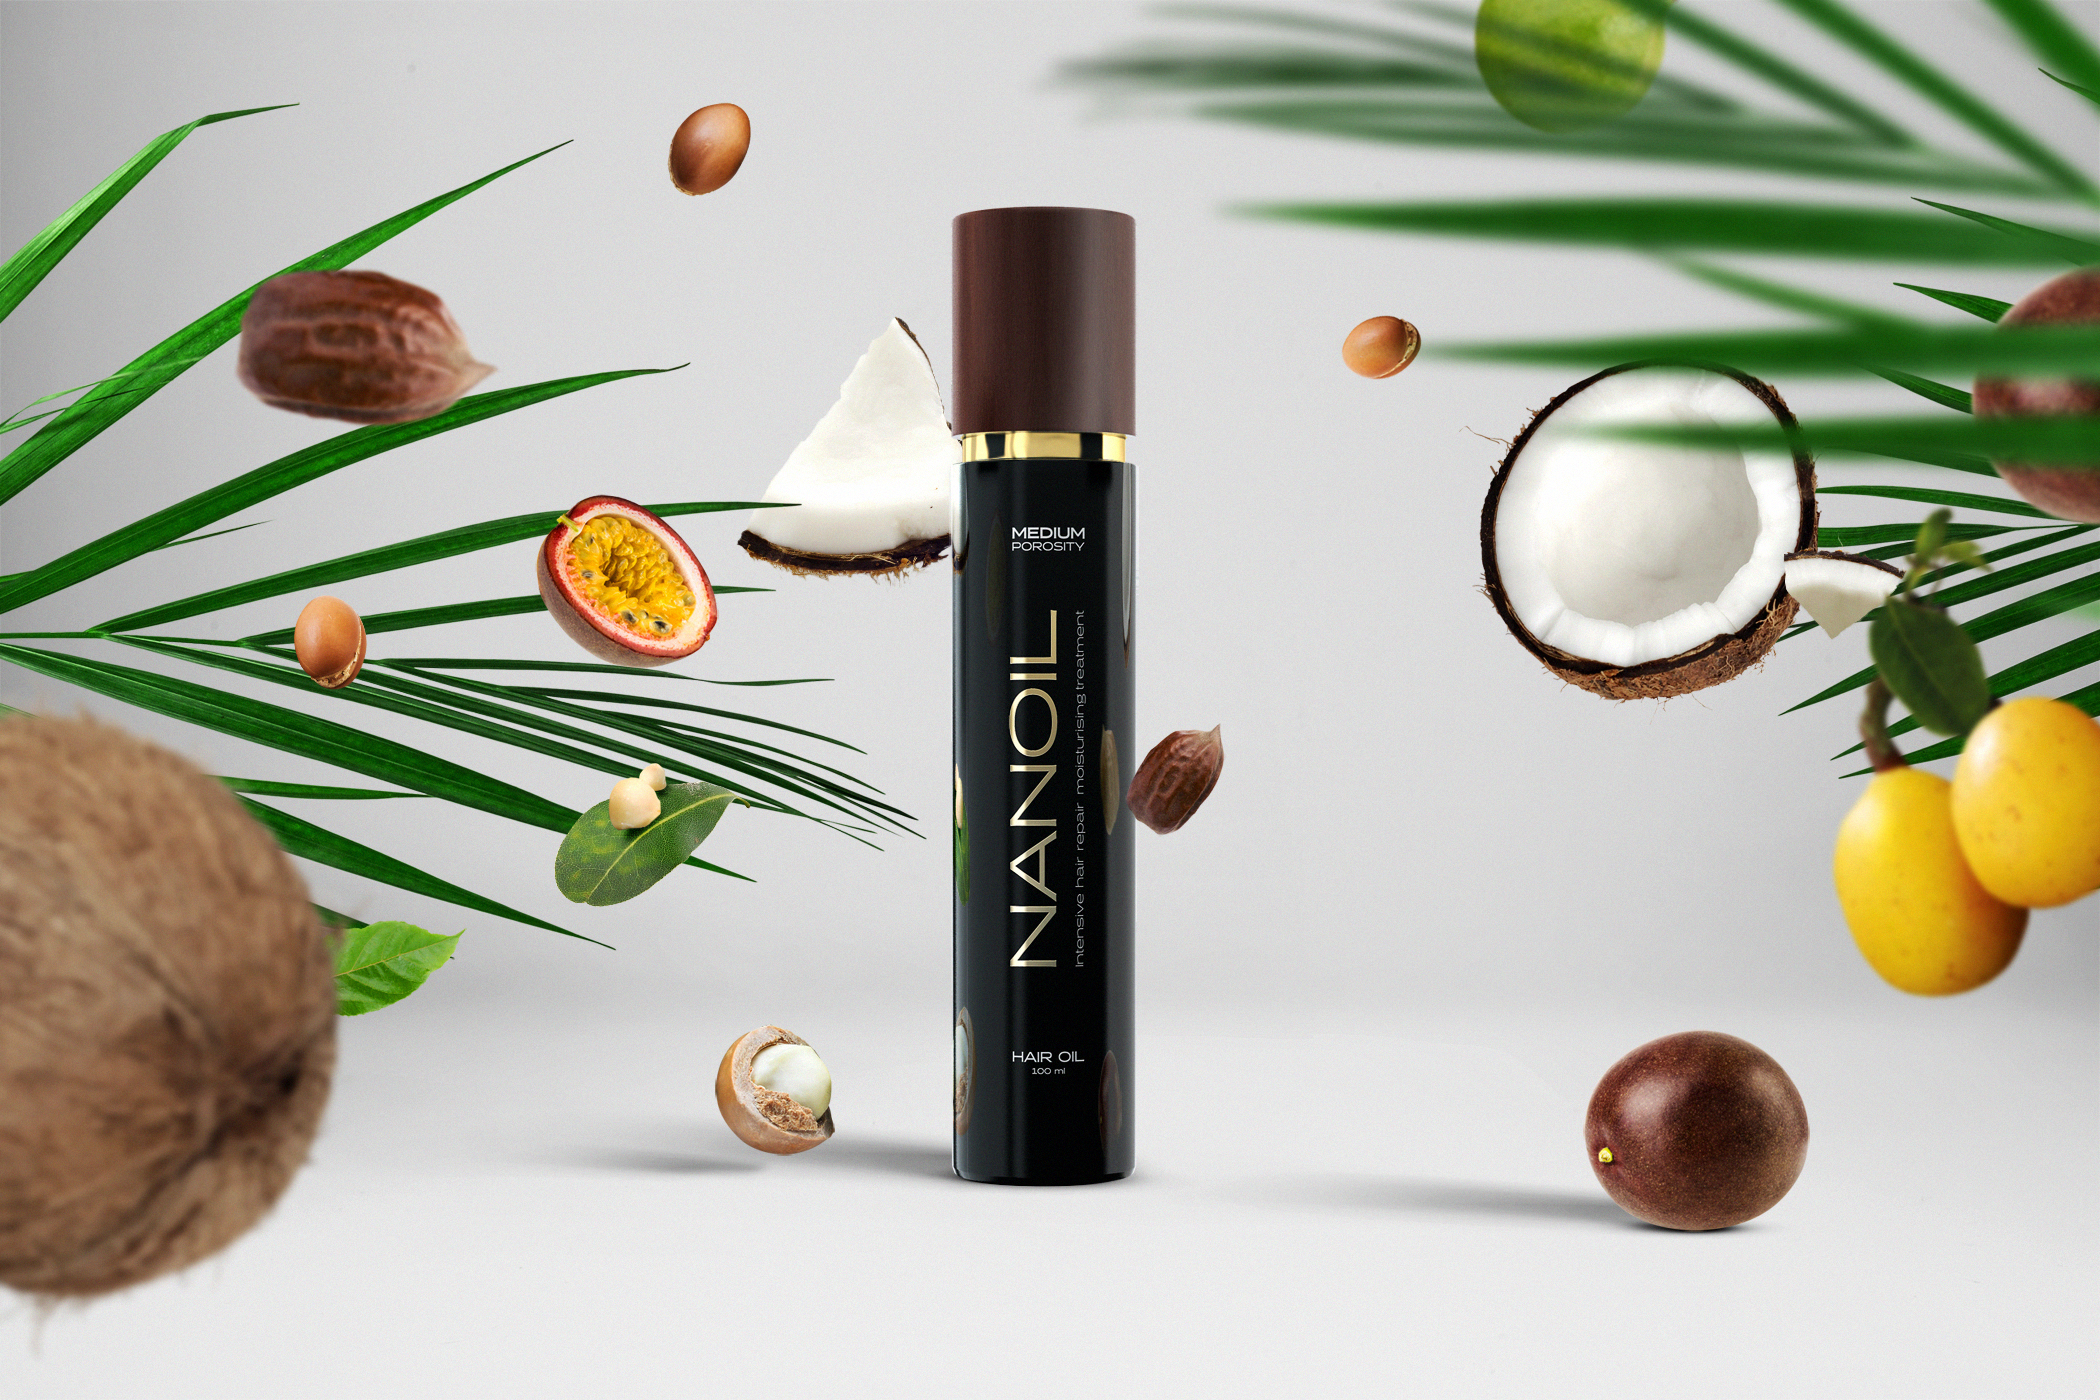 Iconic hair oil - NANOIL